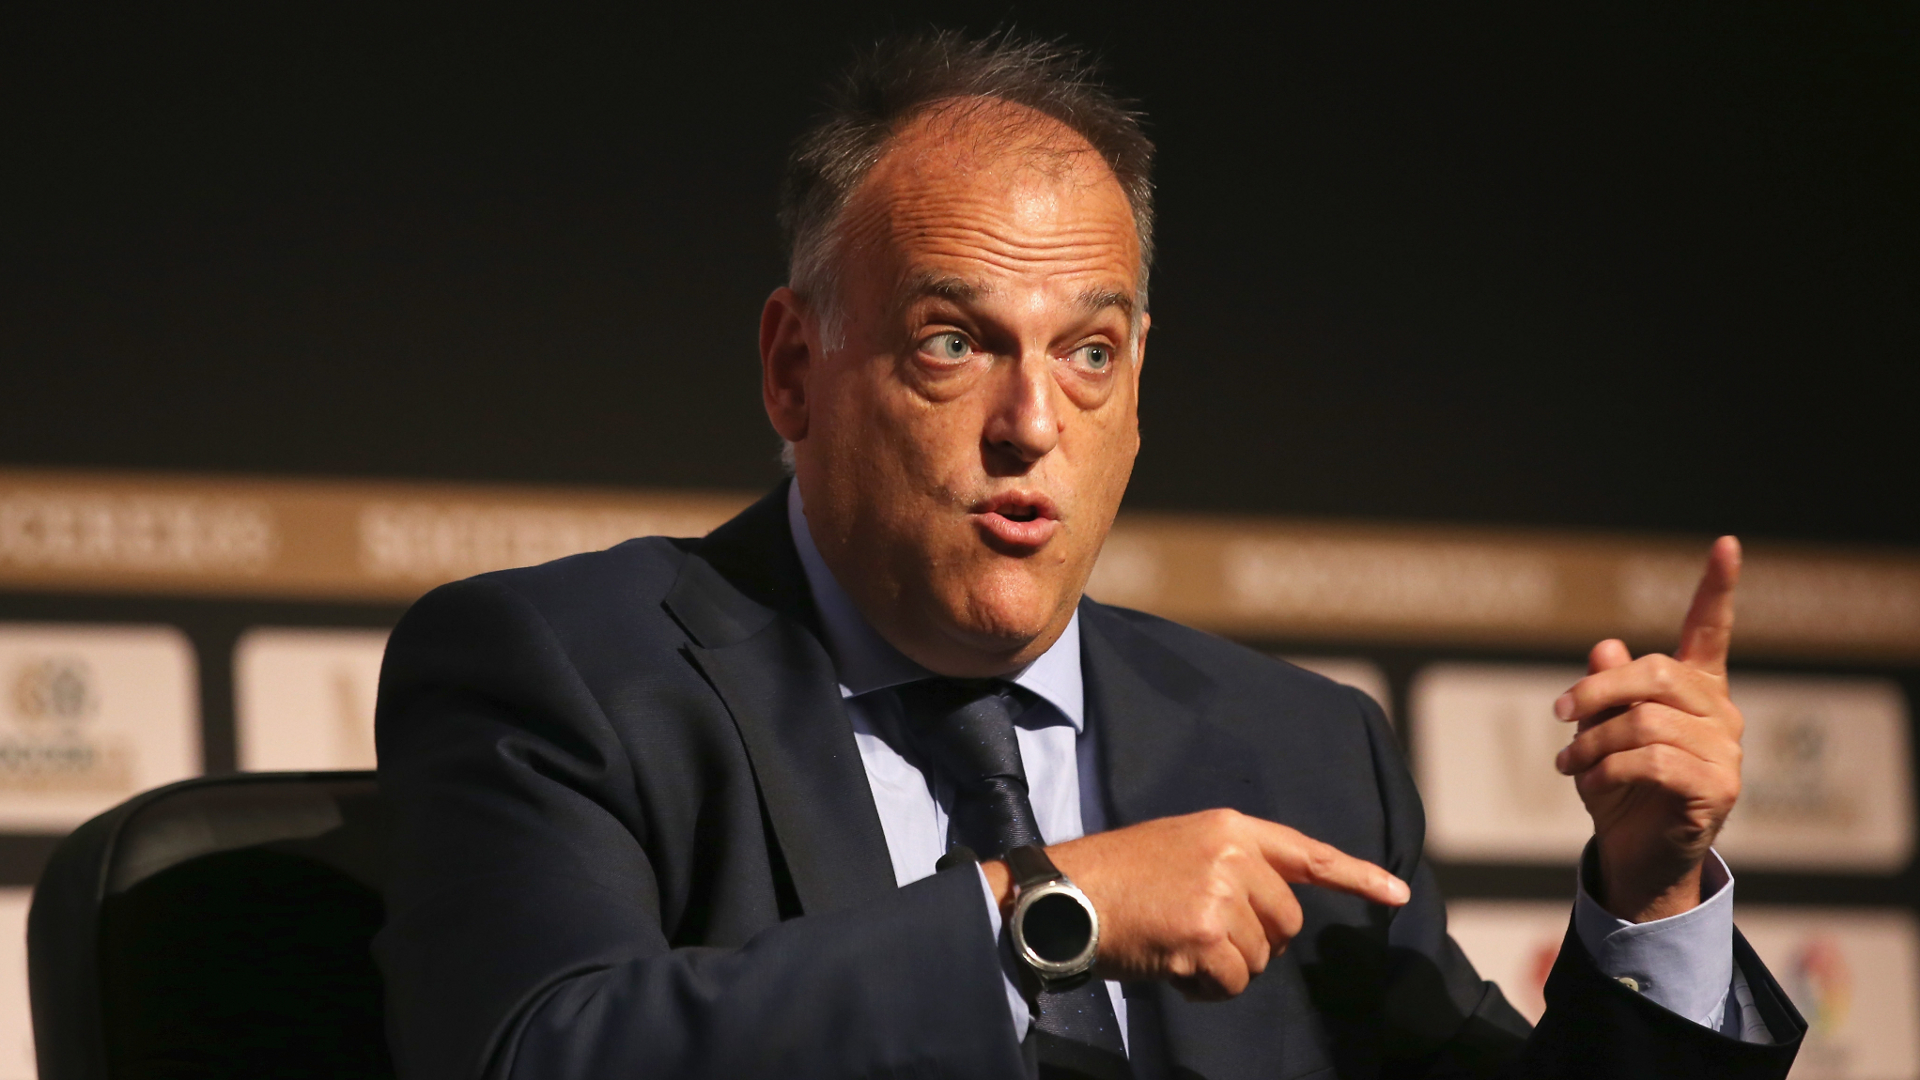 Tebas aims subtle dig at Man City and PSG while criticising financial 'doping'